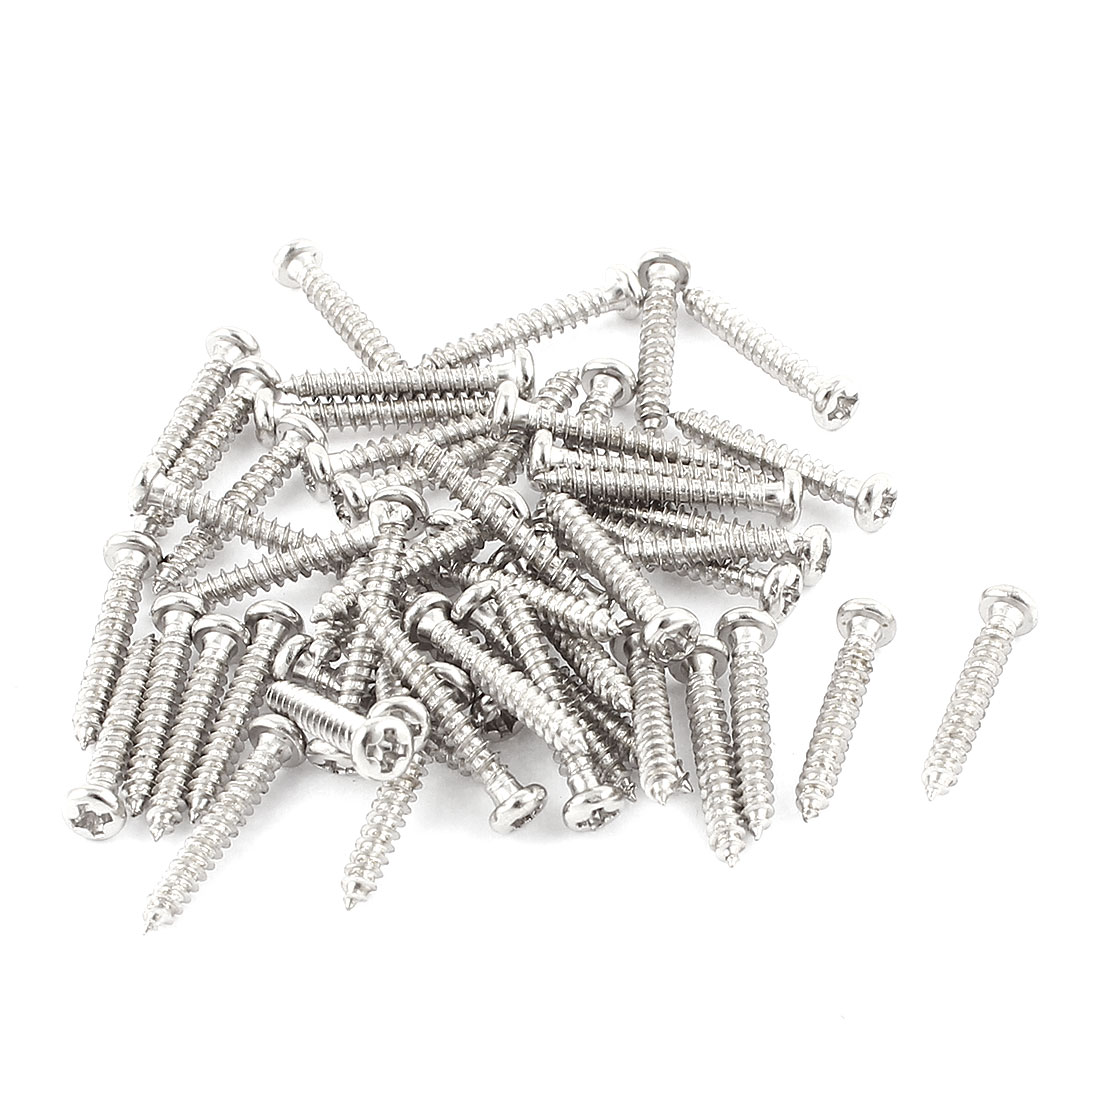 50 Pcs M2x14mm Stainless Steel Phillips Round Head Self Tapping Screws Bolts